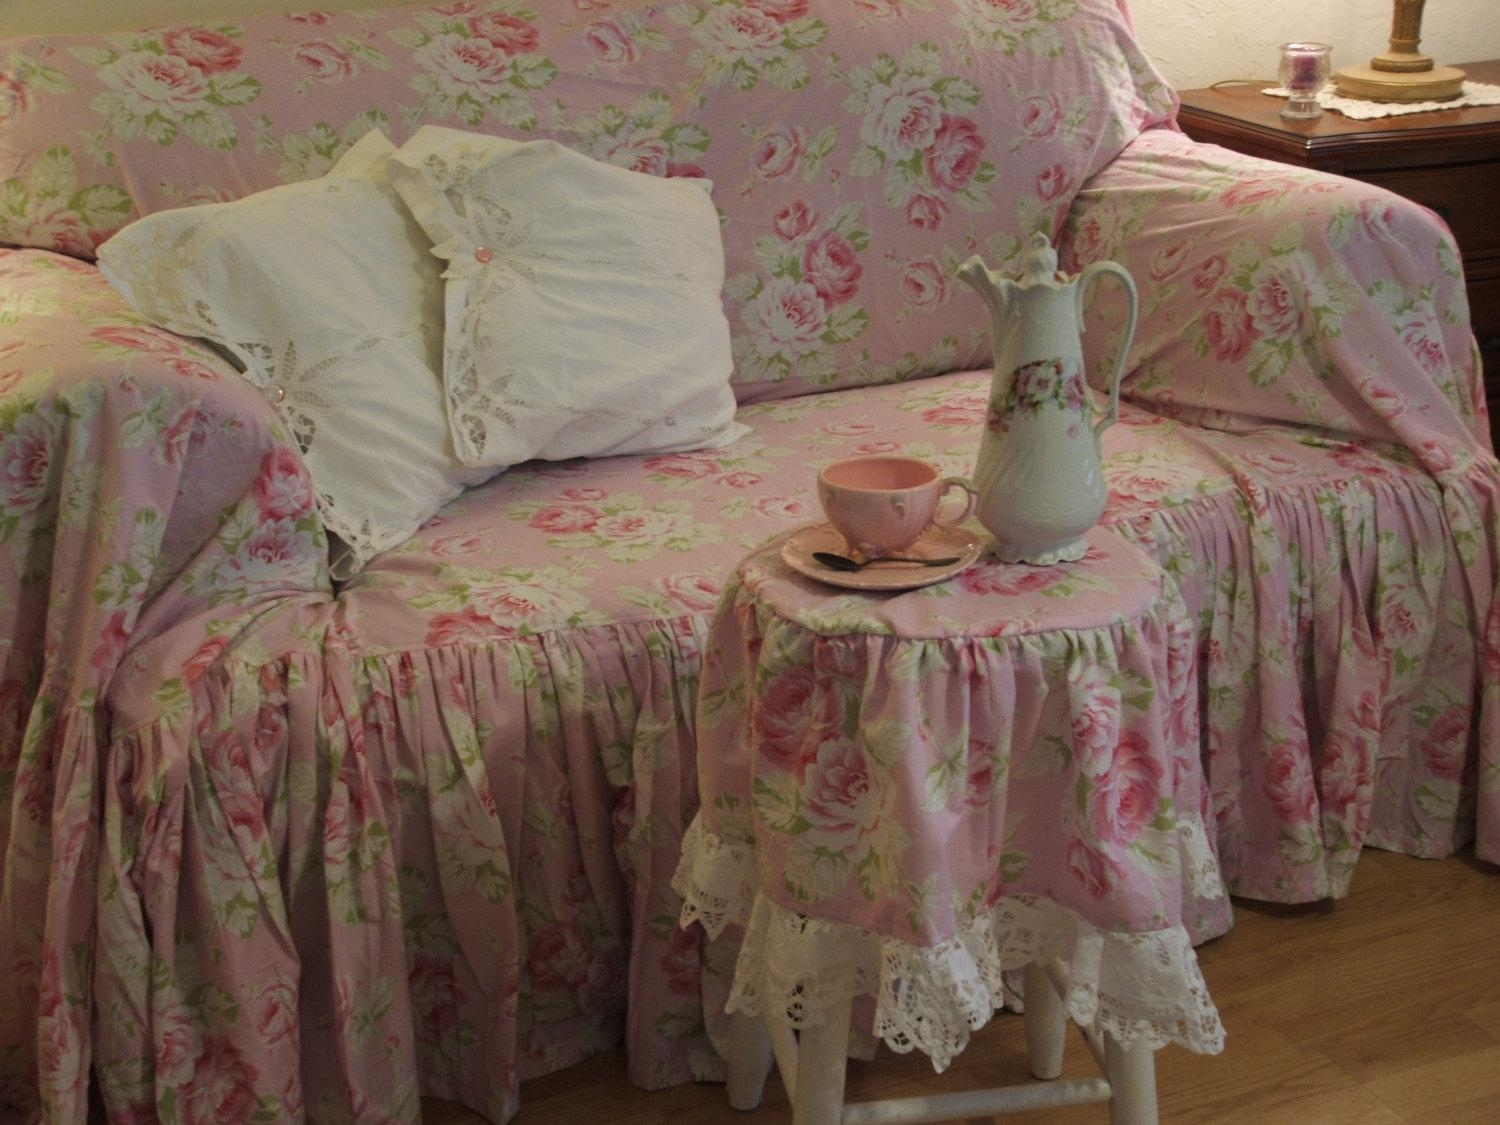 Shabby Chic Slipcovers. Chic With Shabby Chic Slipcovers (Image 12 of 20)